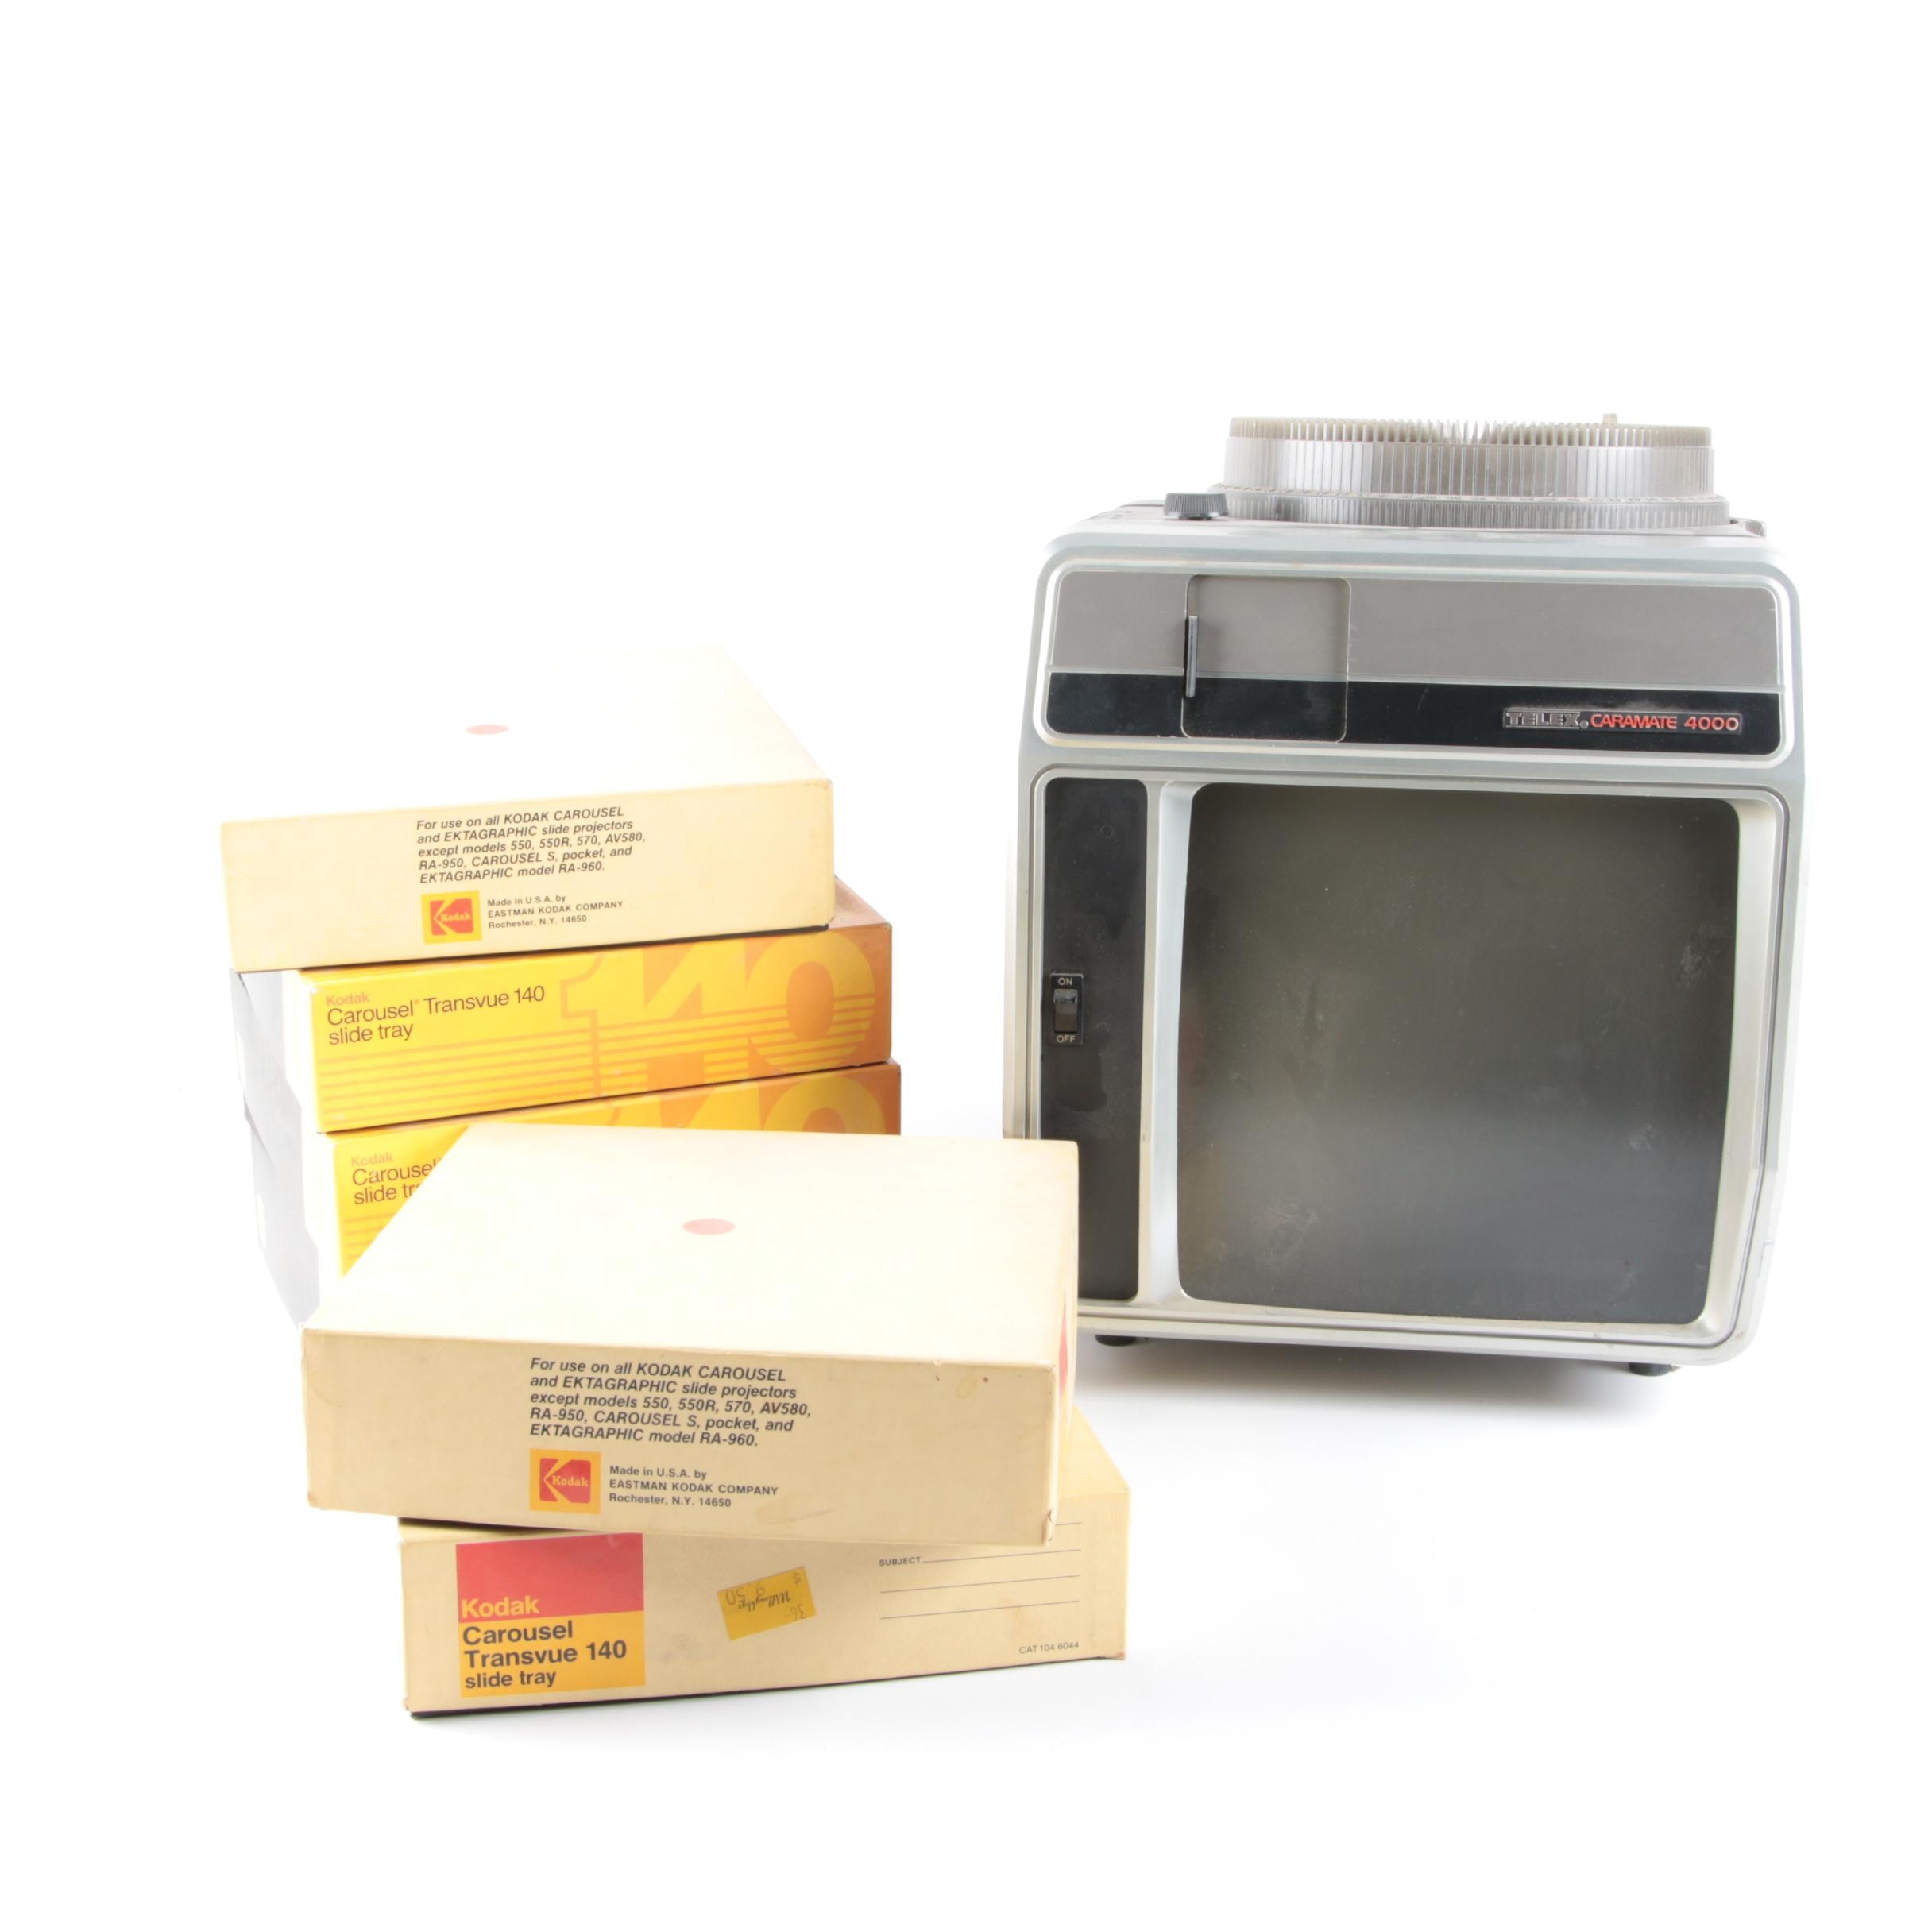 Telex Caramate 4000 Slide Projector with Slide Carousels